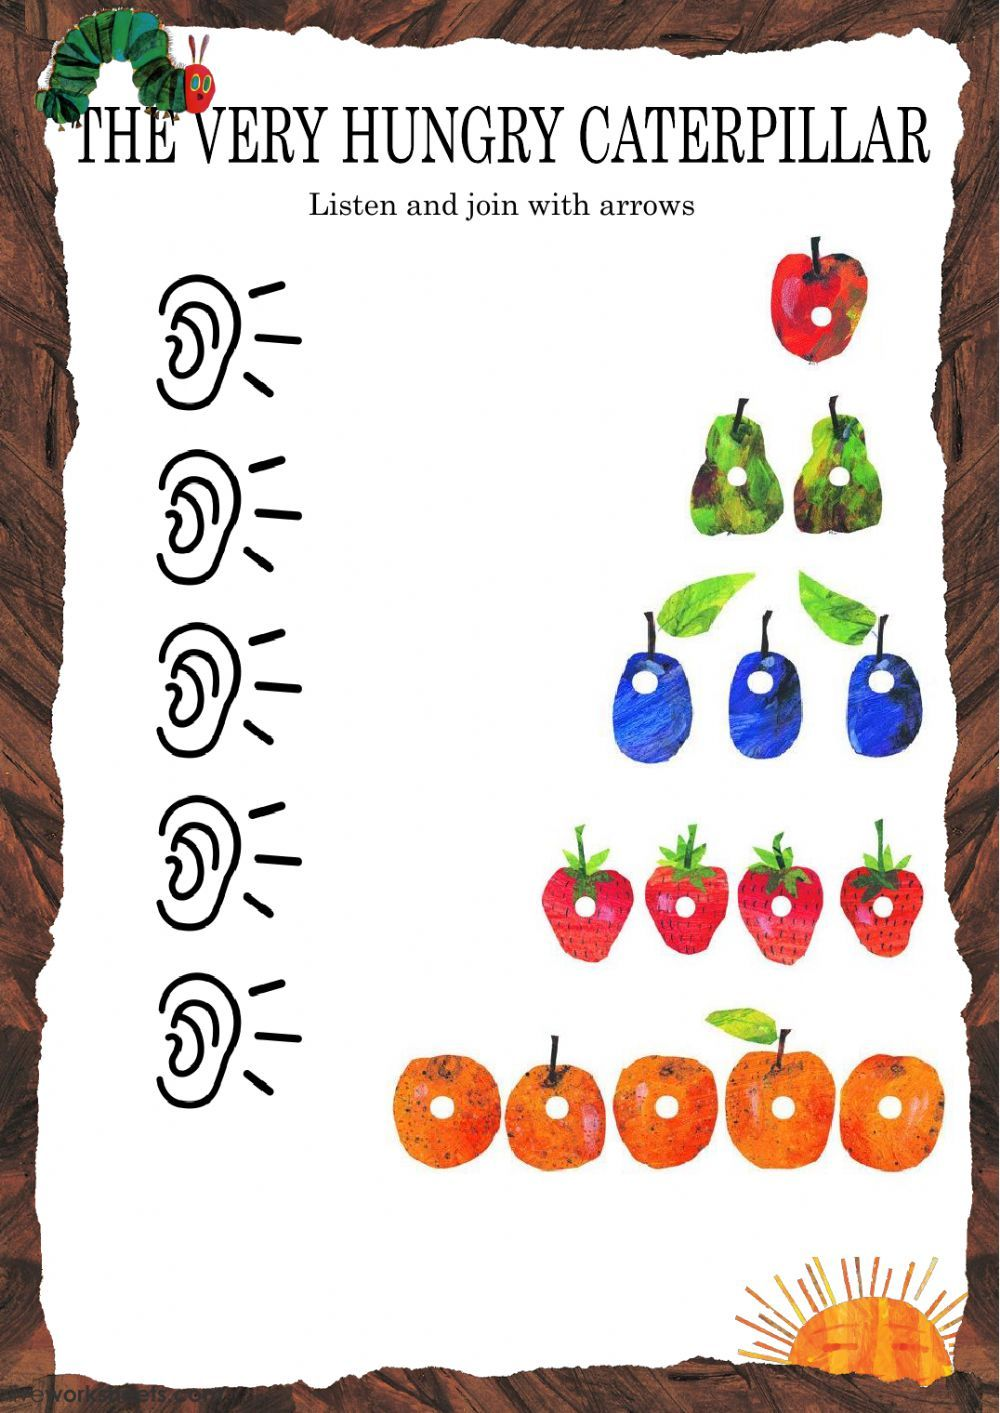 The Very Hungry Caterpillar Interactive And Downloadable Worksheet You Can Do The Exerc Hungry Caterpillar The Very Hungry Caterpillar Very Hungry Caterpillar [ 1413 x 1000 Pixel ]